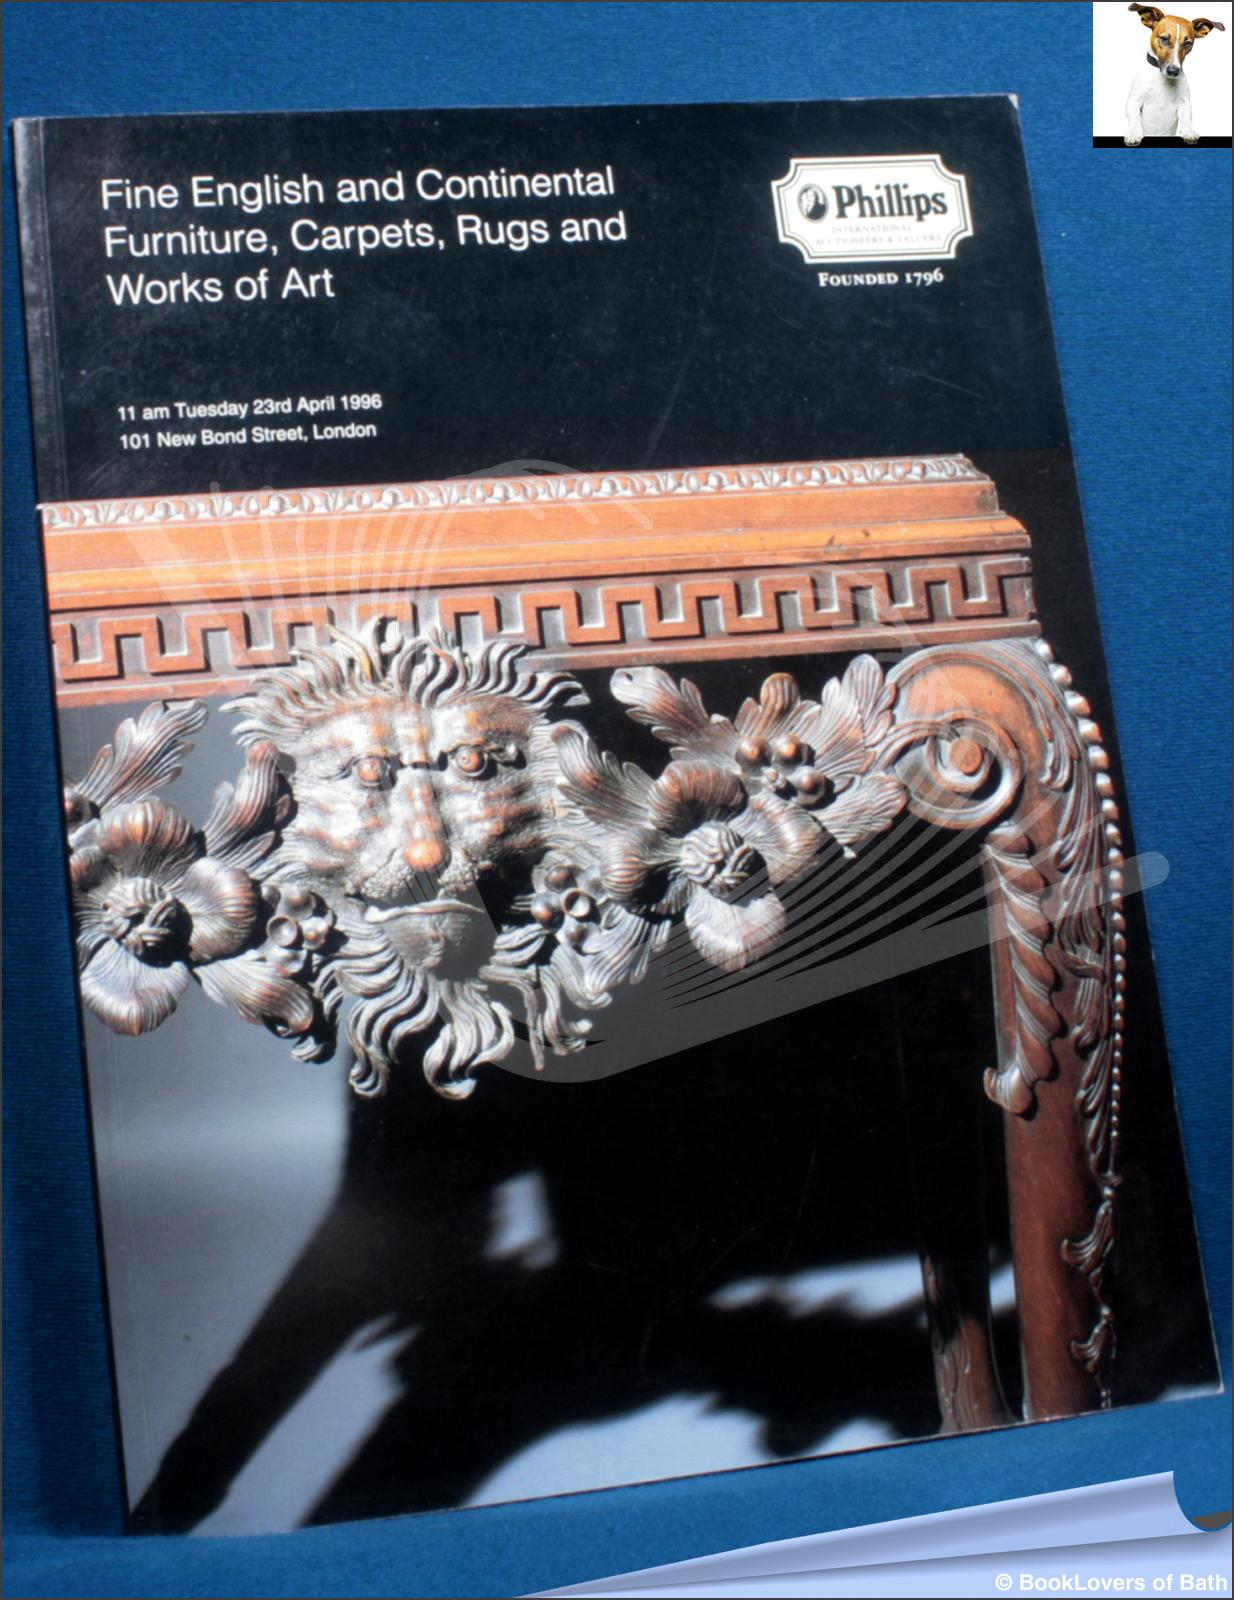 Fine English and Continental Furniture, Carpets, Rugs and Works of Art 11am Tuesday 23rd April 1996 - Anon.